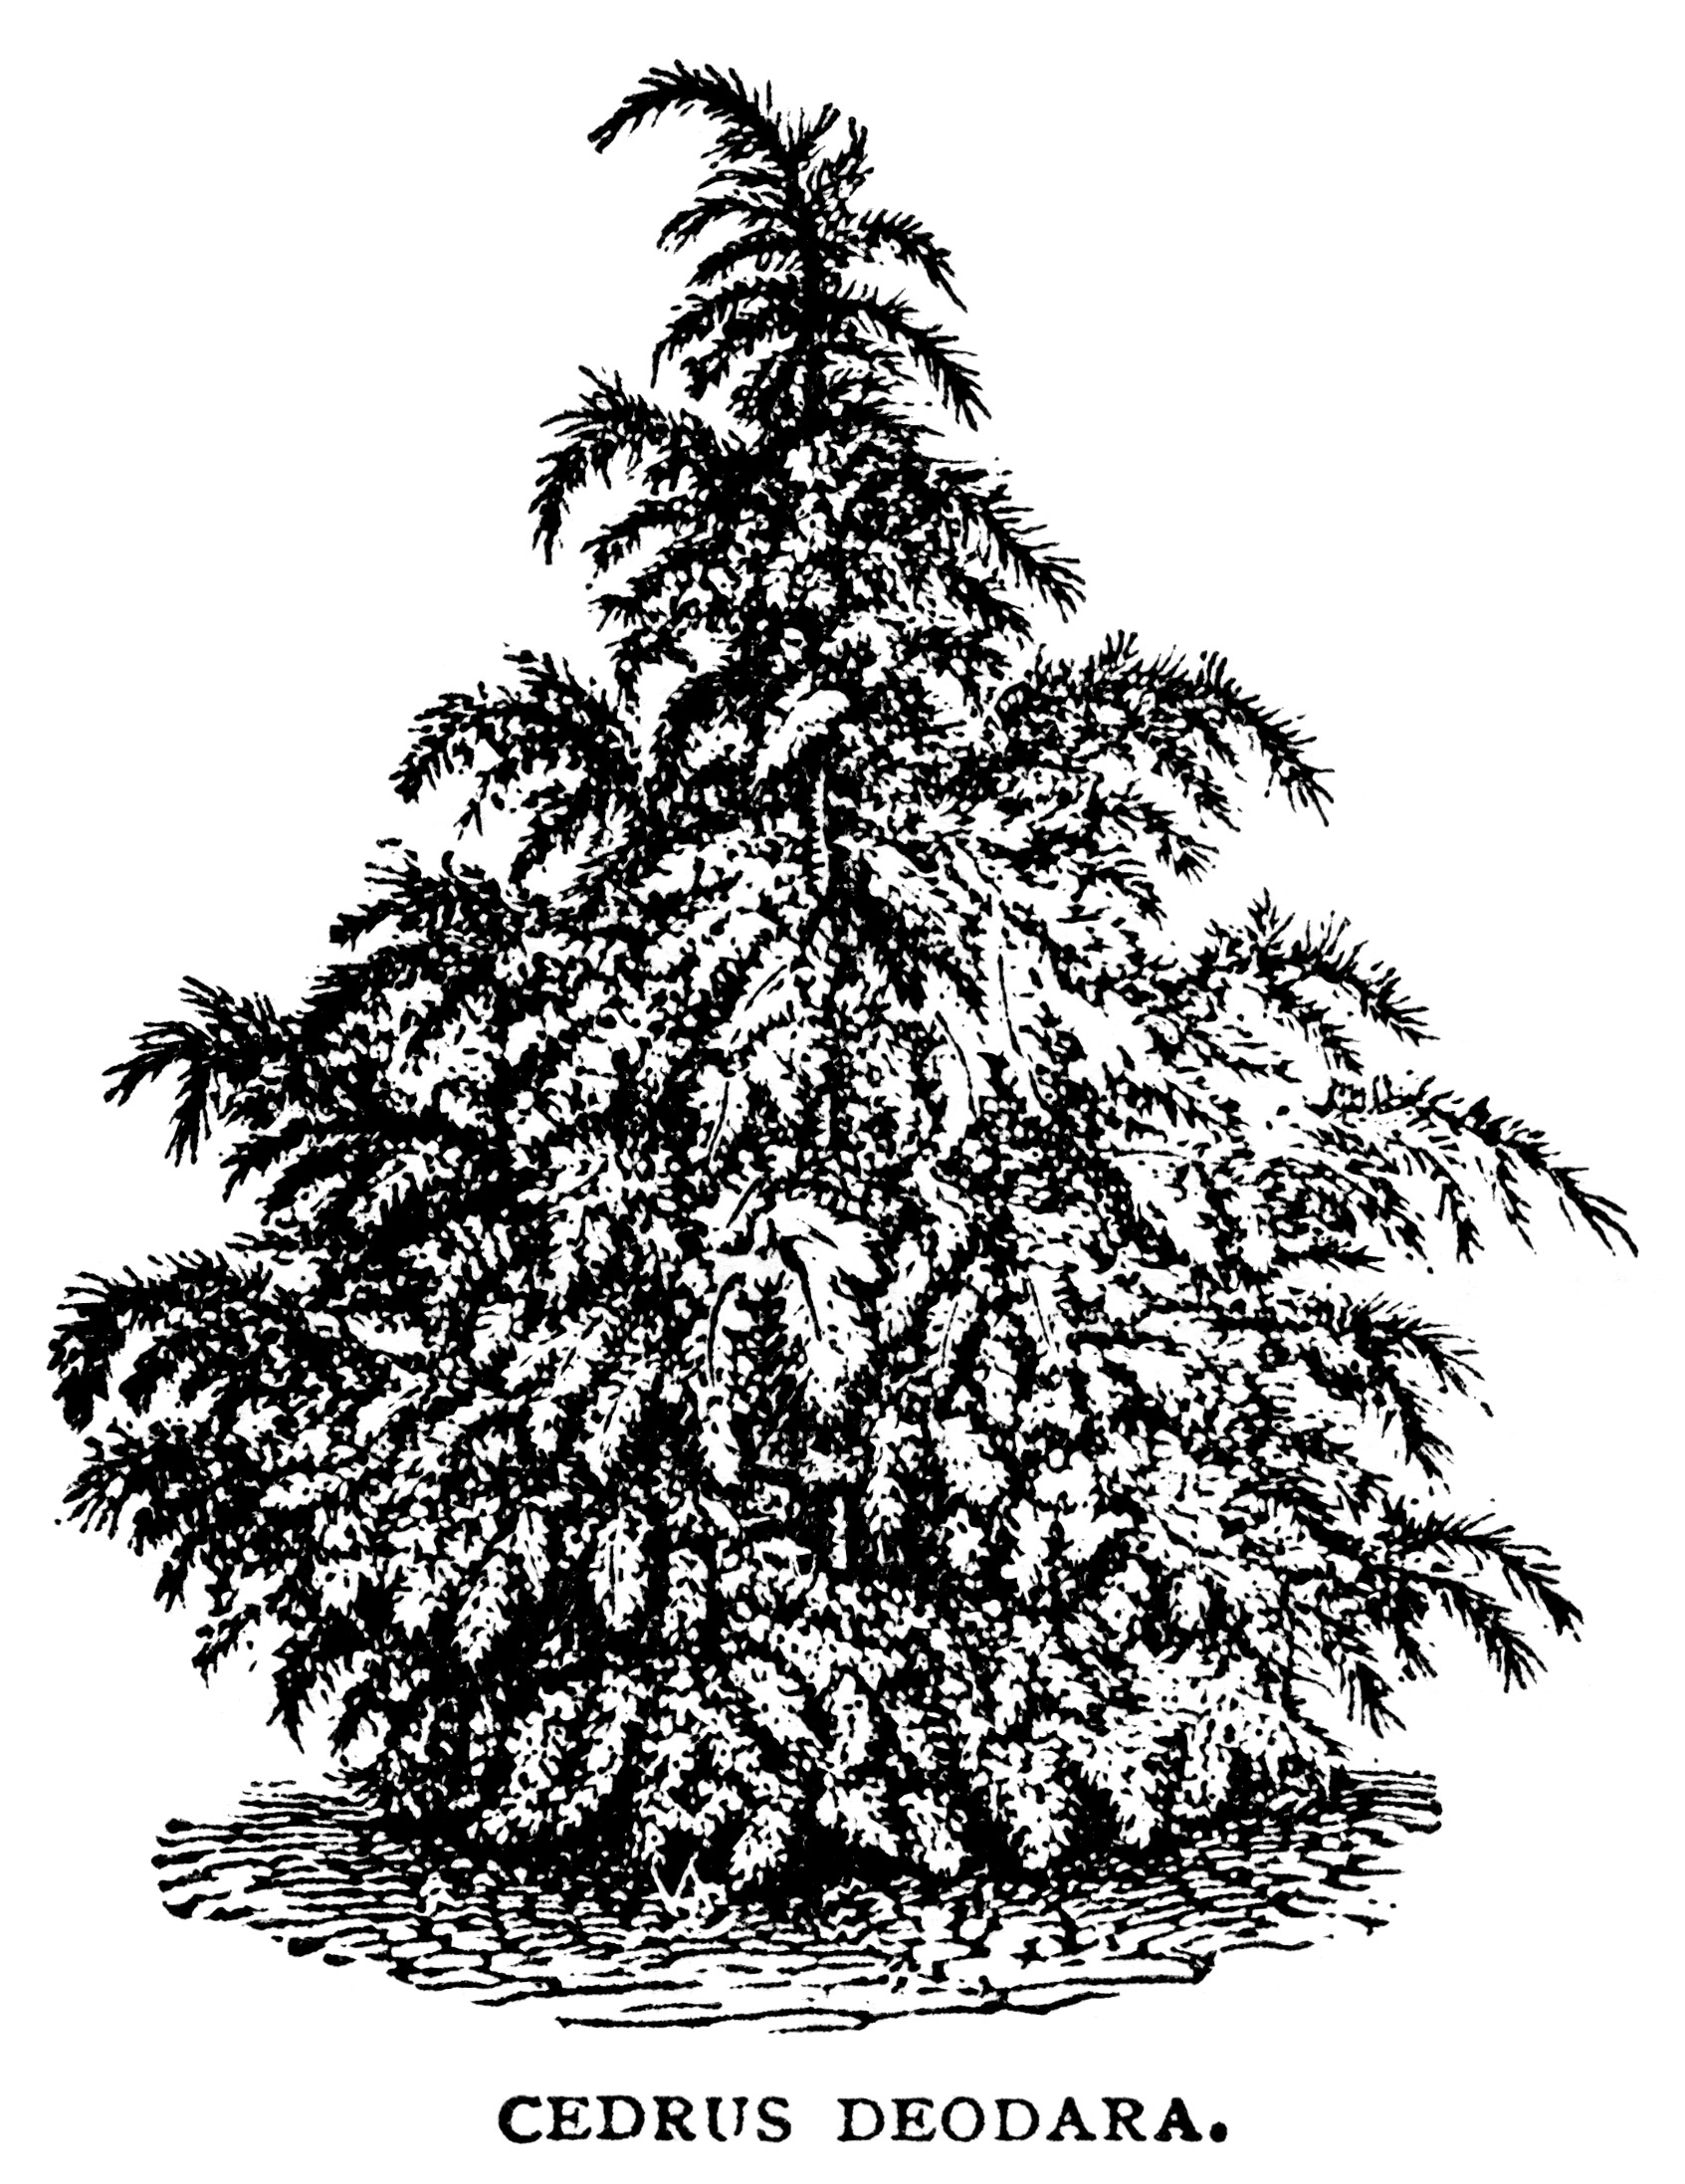 black and white graphics, botanical spruce tree illustration.